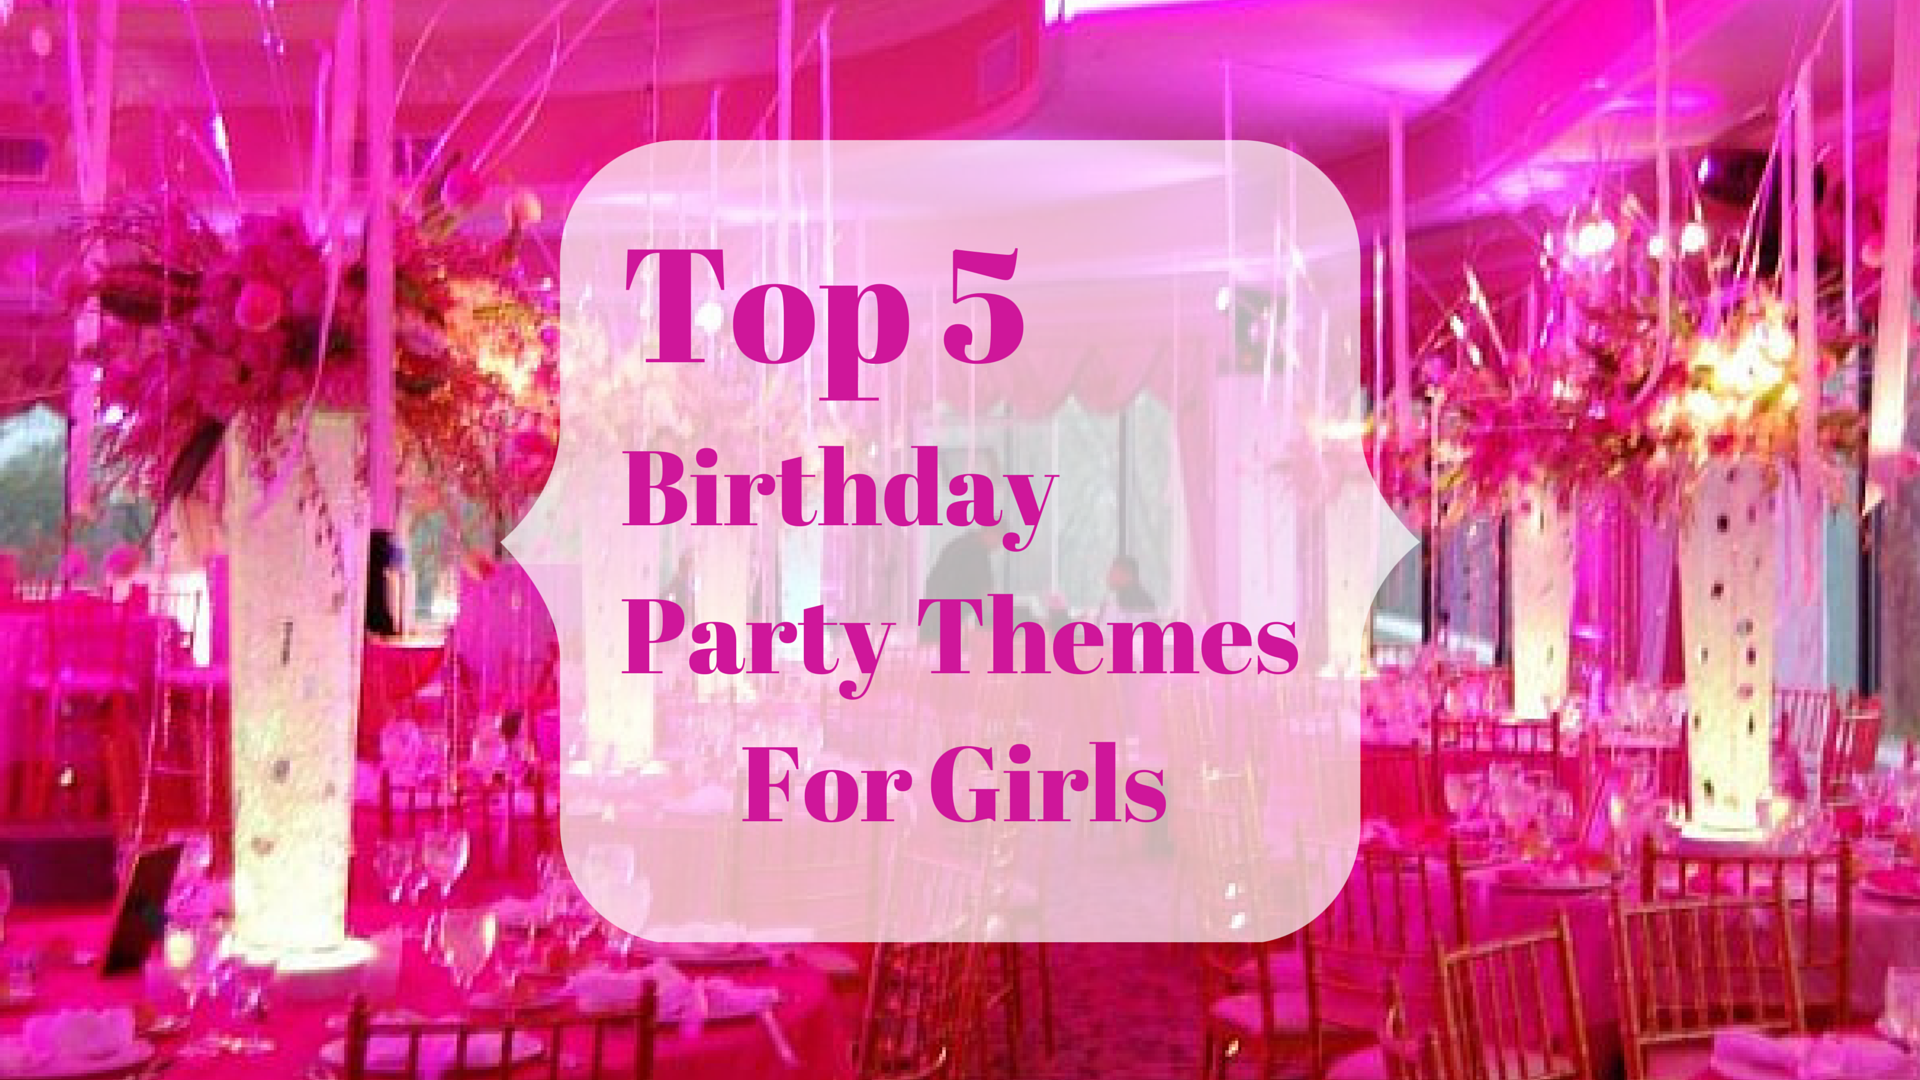 Top 5 Birthday Party Themes For Girls If